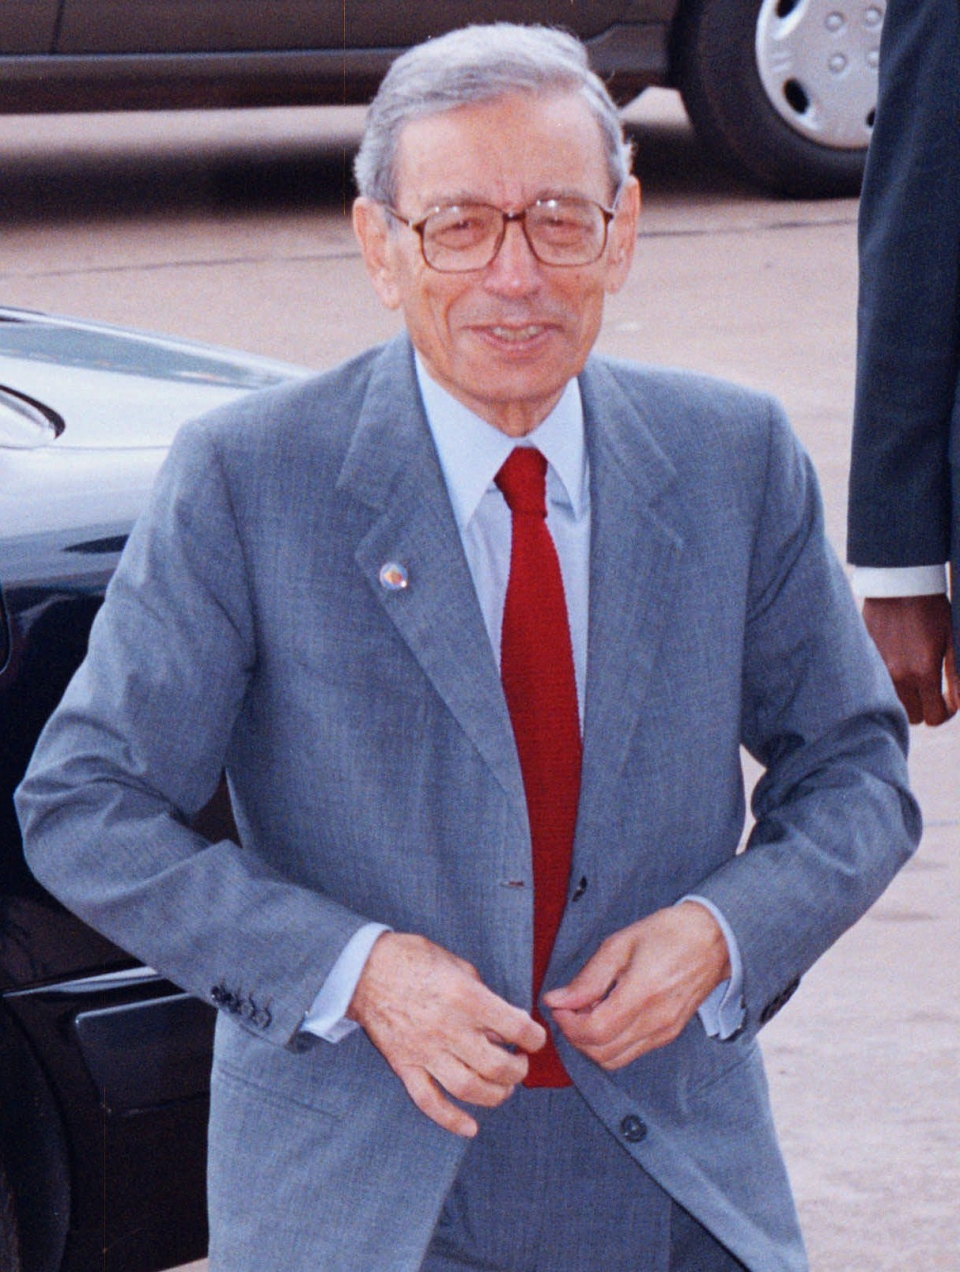 Former UN Secretary-General Boutros Boutros-Ghali enters the Congress Palace in Yaounde, Cameroon for day two of deliberations at the Organization of African Unity (OAU) Summit Tuesday July 9, 1996. (AP Photo/David Guttenfelder)